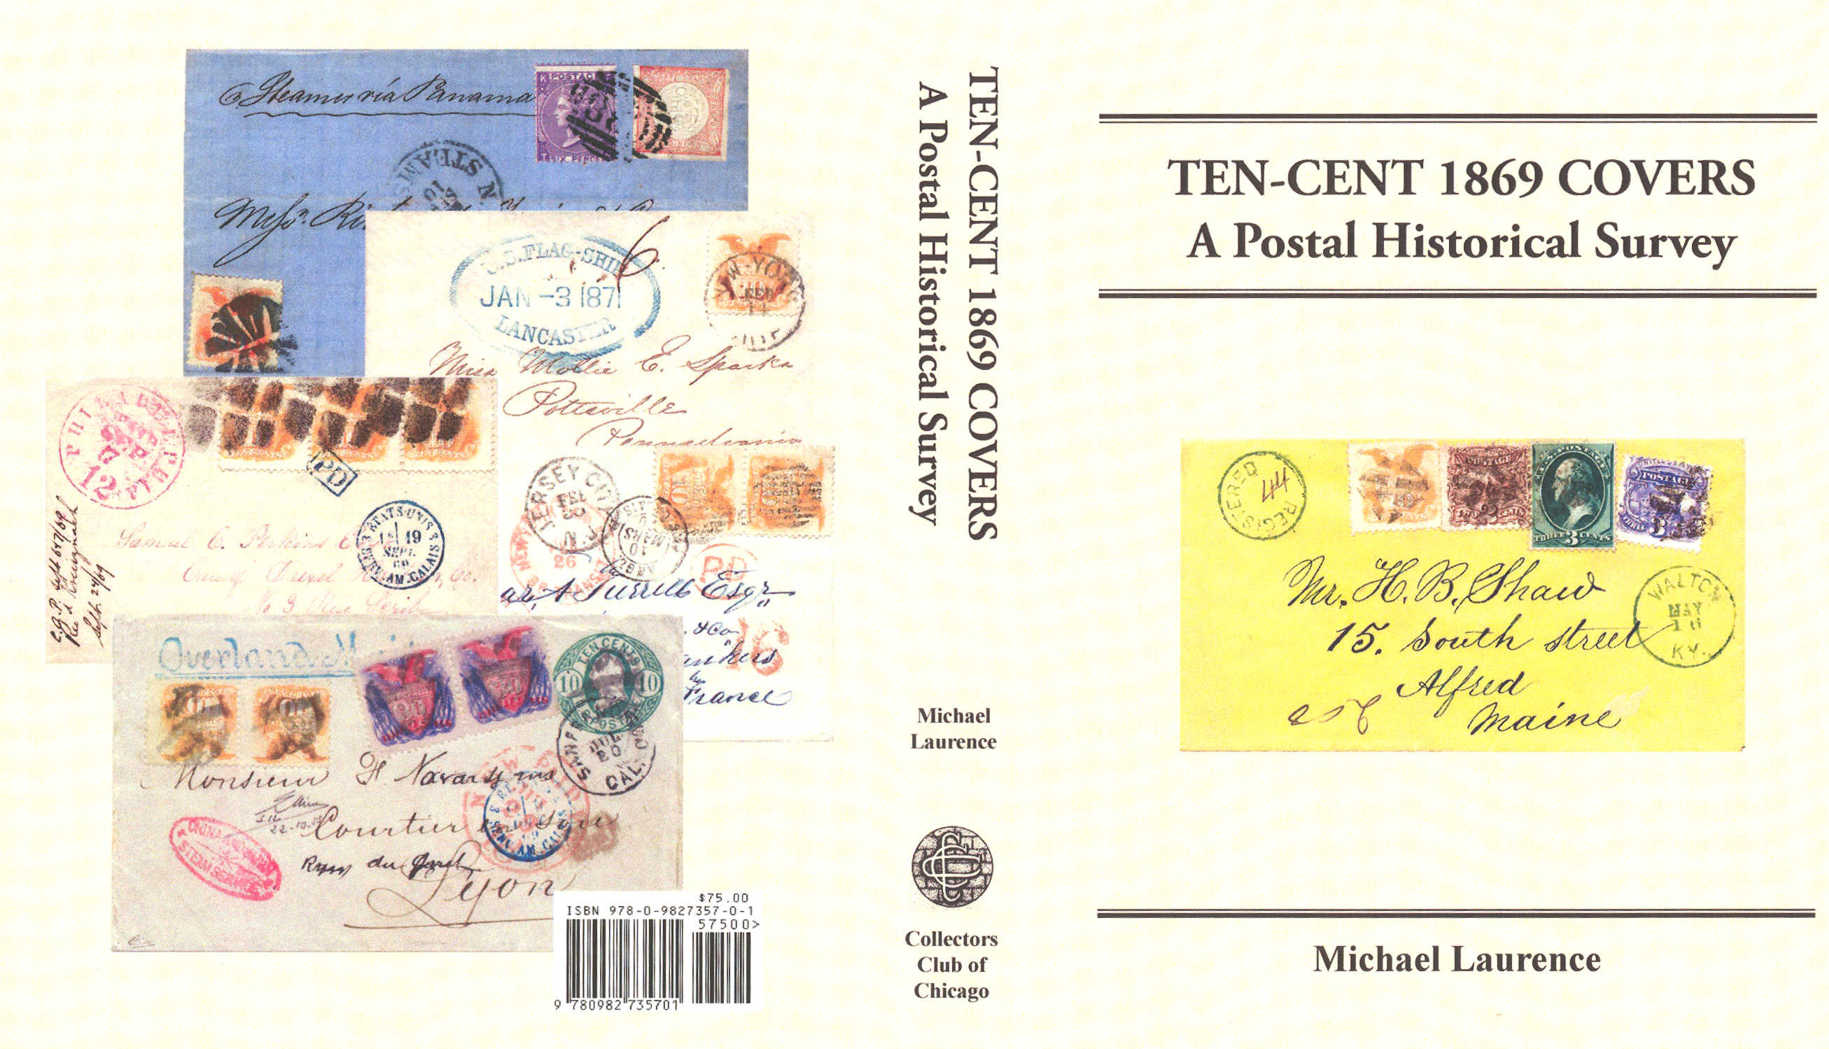 u s postage stamps essays proofs ten cent 1869 covers a postal history survey by michael laurence another exceptional book from the collectors club of chicago a limited edition as